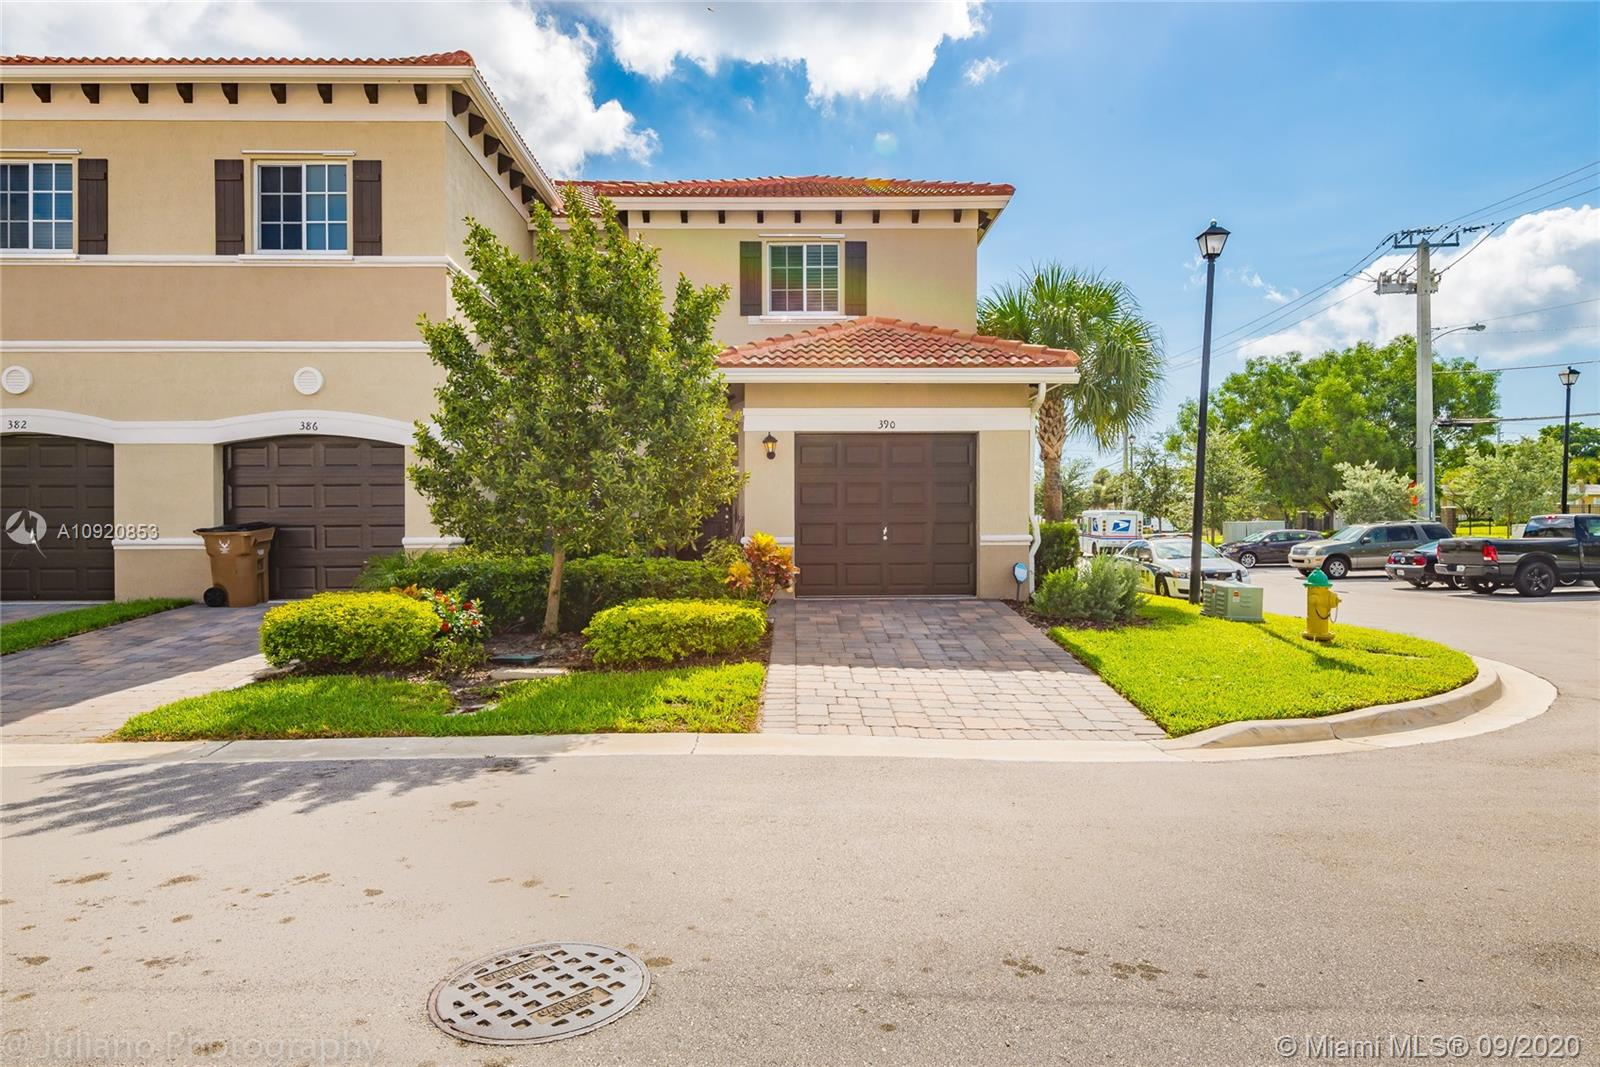 AMAZING CORNER UNIT! HOA ONLY $150,00 per month. ---- NEW CONSTRUCTION TOWNHOUSE 3 bedrooms, 2 ½ baths with 1 car garage, located in the beautiful Village Park community ONLY 1.6 miles from the BEACH. Open concept modern kitchen with plenty of modern white Shaker cabinetry, neutral granite counters, and stainless steel appliances. Open floor plan is finished in tile wood grain style floorings downstairs and wood floorings upstairs. Huge MASTER BEDROOMS with 2 walking closets. Enjoy all the South Florida lifestyle has to offer in Deerfield Beach. Minutes from the beach and Intracoastal waterways Village Park offers low monthly HOA fees and neighbors Brunhilda Richardson-Knowles Memorial Park. EASY TO SHOW!